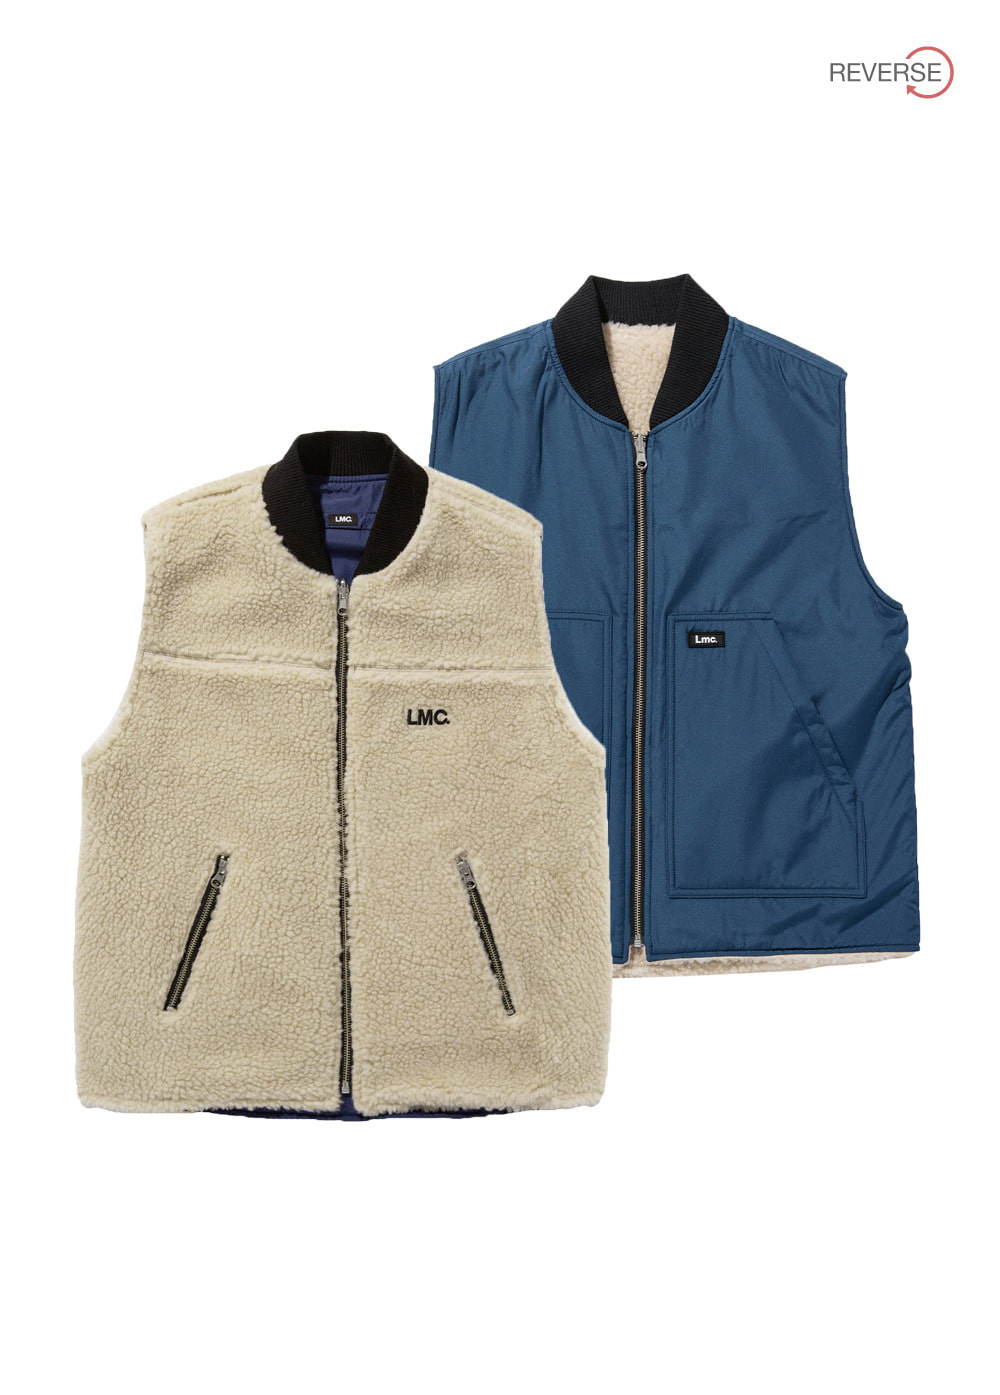 LMC REVERSIBLE BOA VEST be/nv